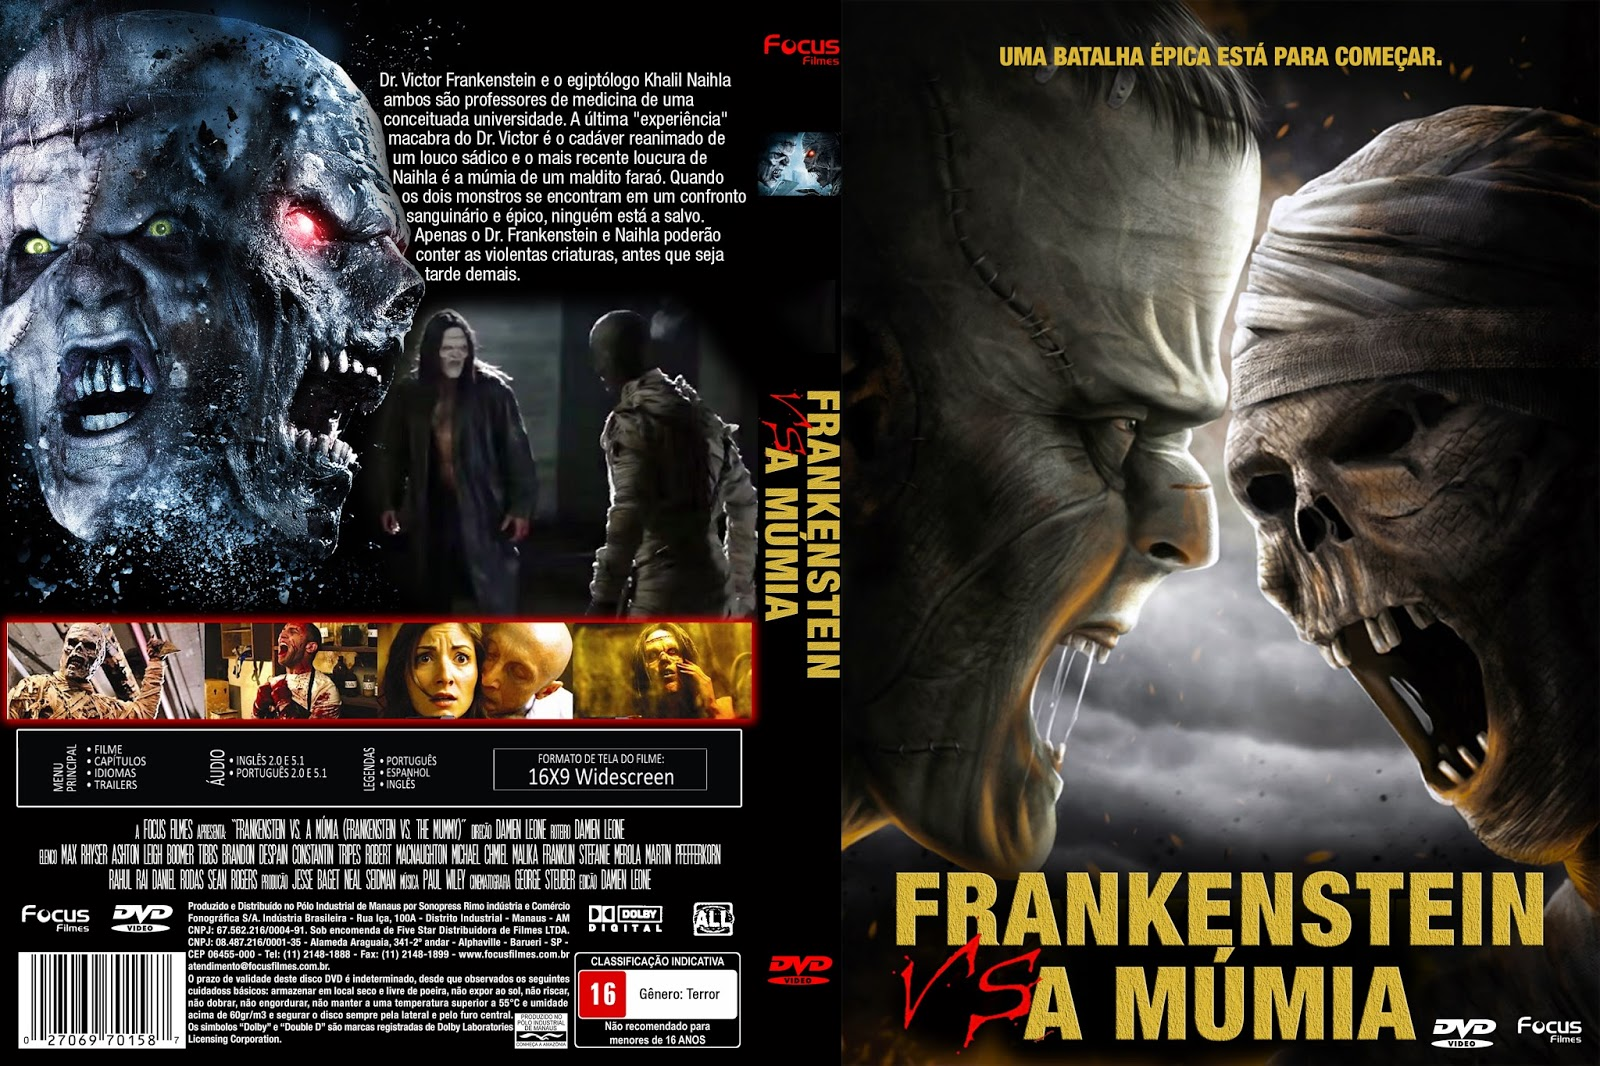 Download Frankenstein Vs. a Múmia DVD-R Frankenstein 2BVs 2BA 2BM 25C3 25BAmia